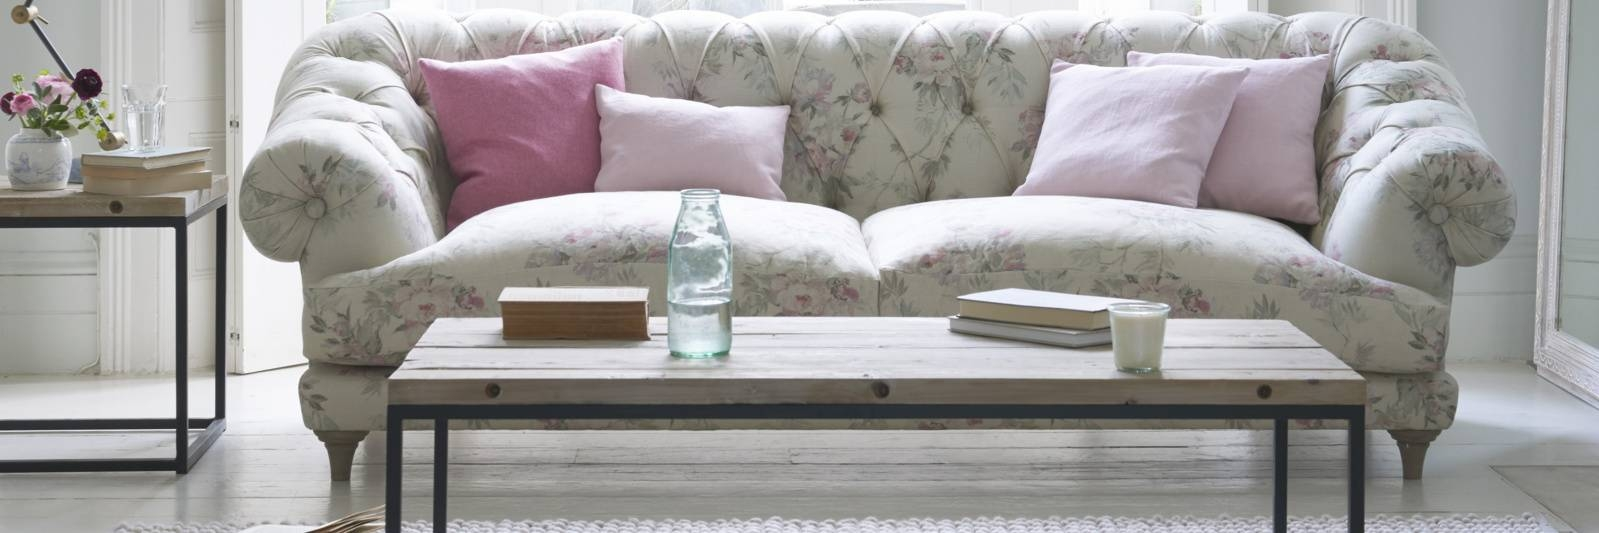 Floral Sofas | Floral Patterned Sofas | Loaf with Floral Sofas (Image 7 of 15)